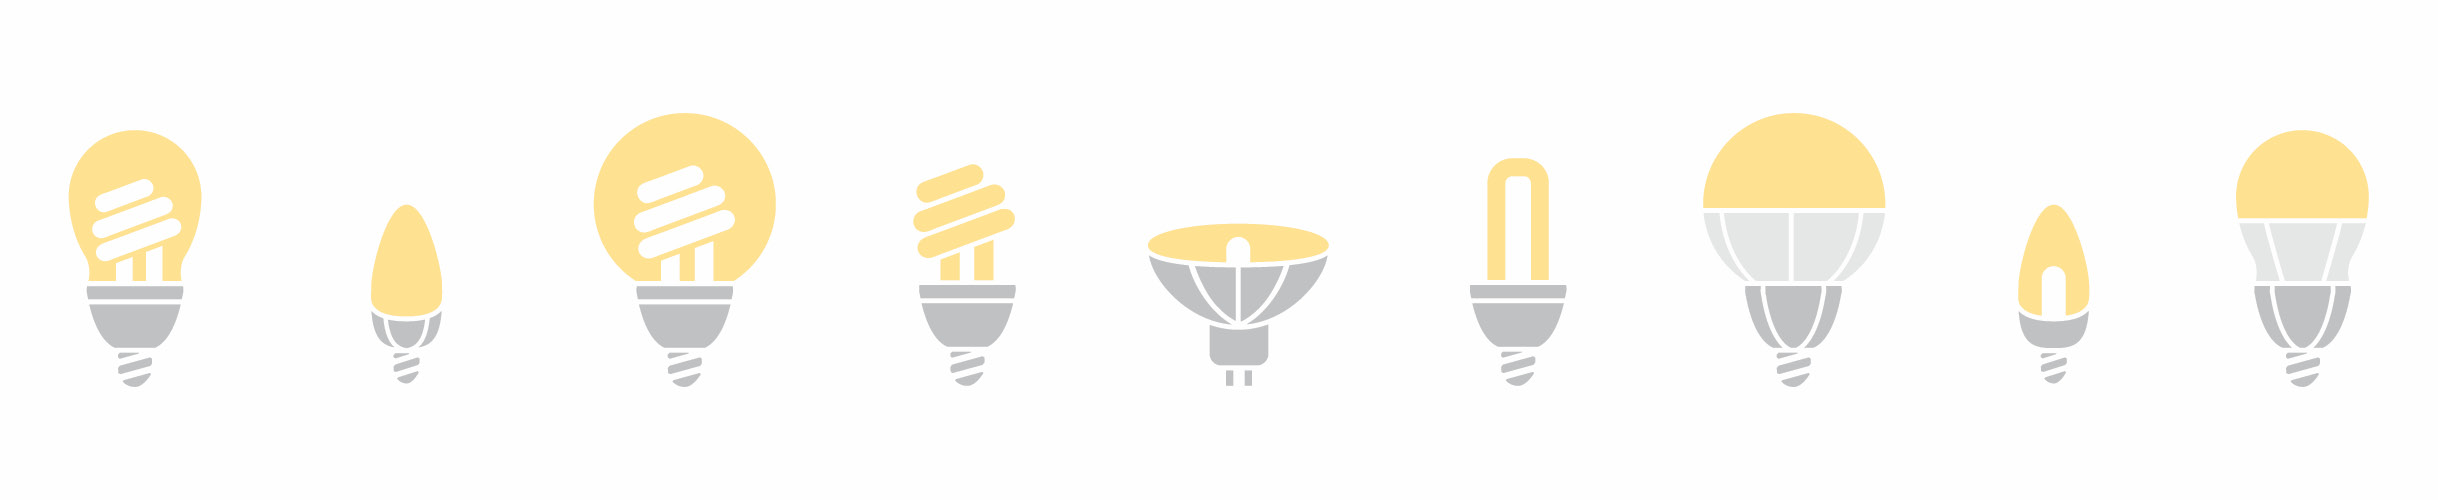 A series of nine grey and yellow light bulb icons depicting the nine sustainable bulb types in the promotional package.